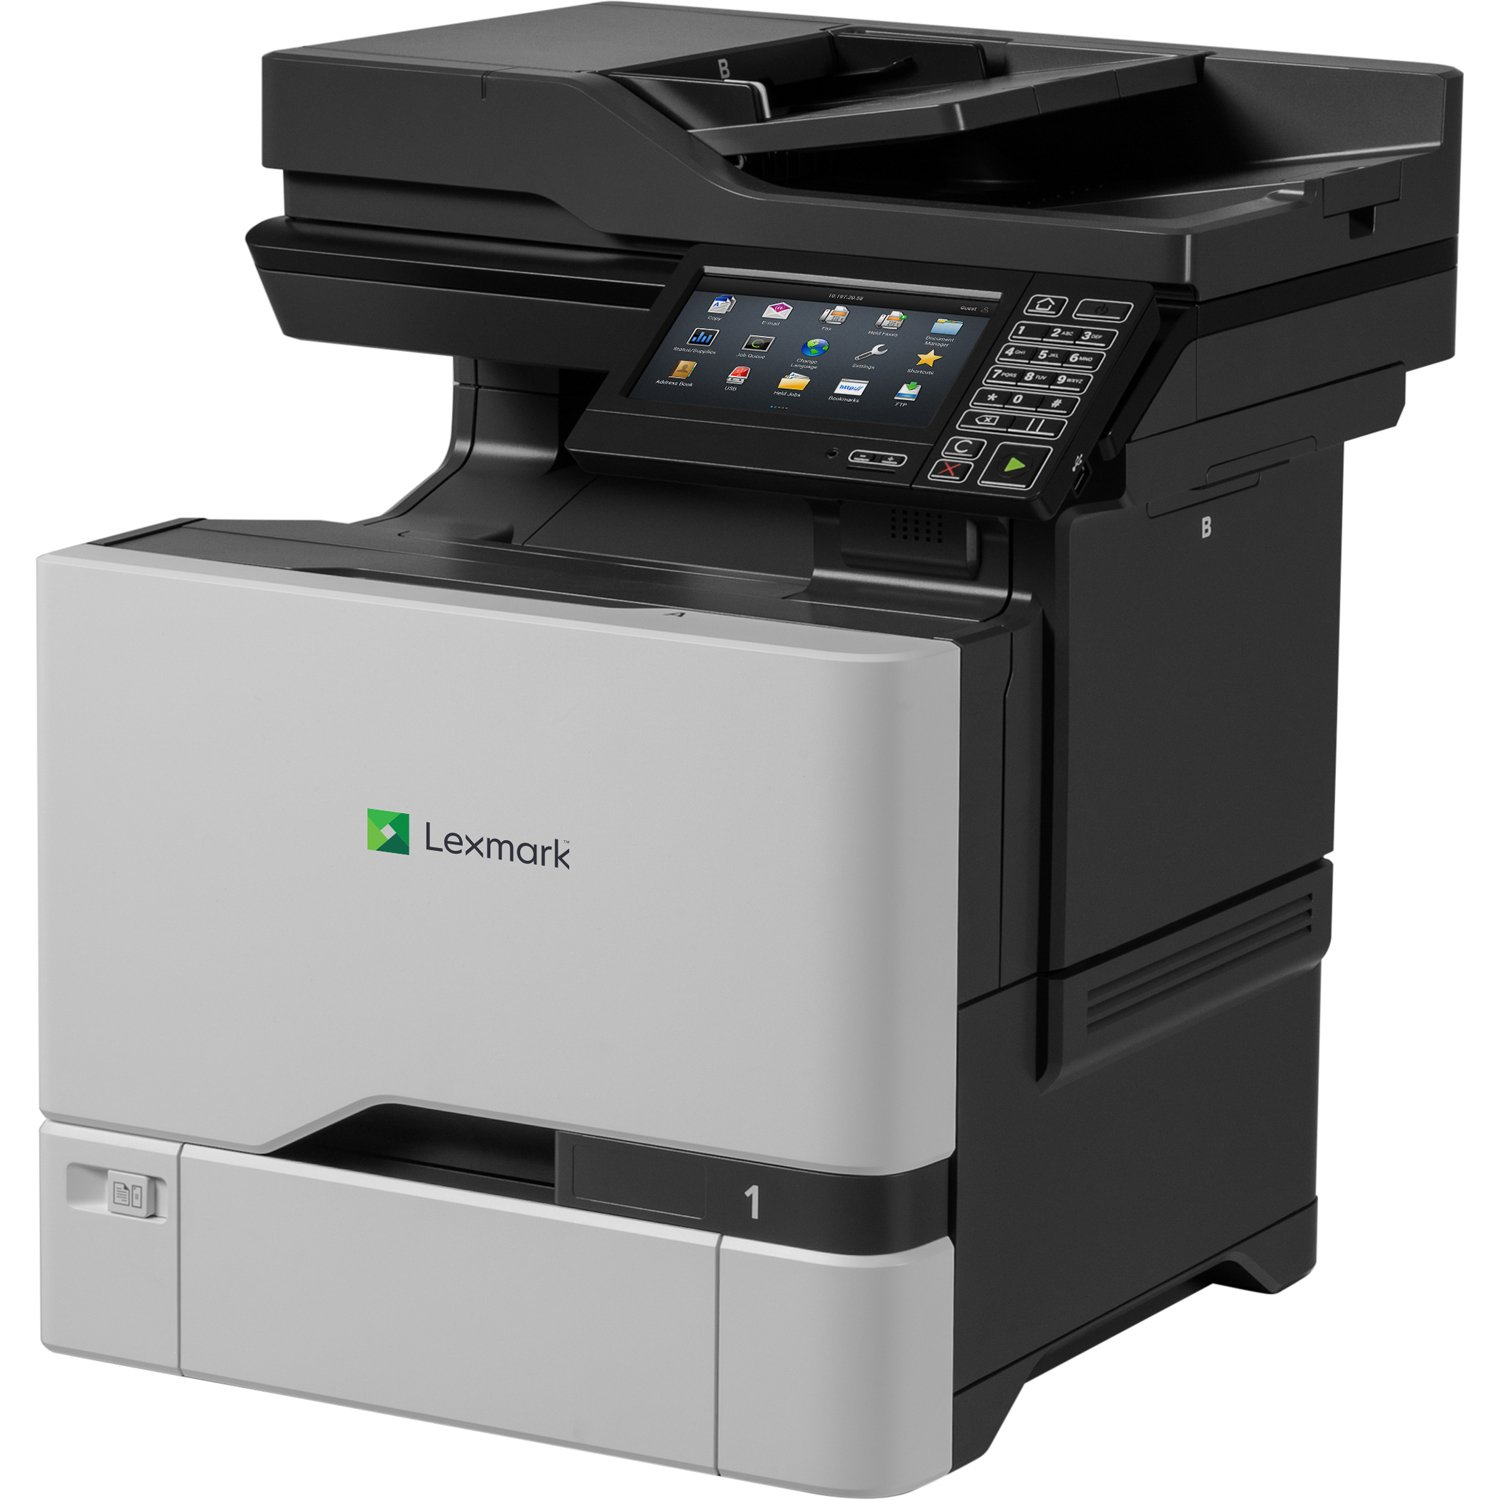 Network Ready Lexmark 40C9500 CX725de Color All-in One Laser Printer Duplex Printing//Professional Features